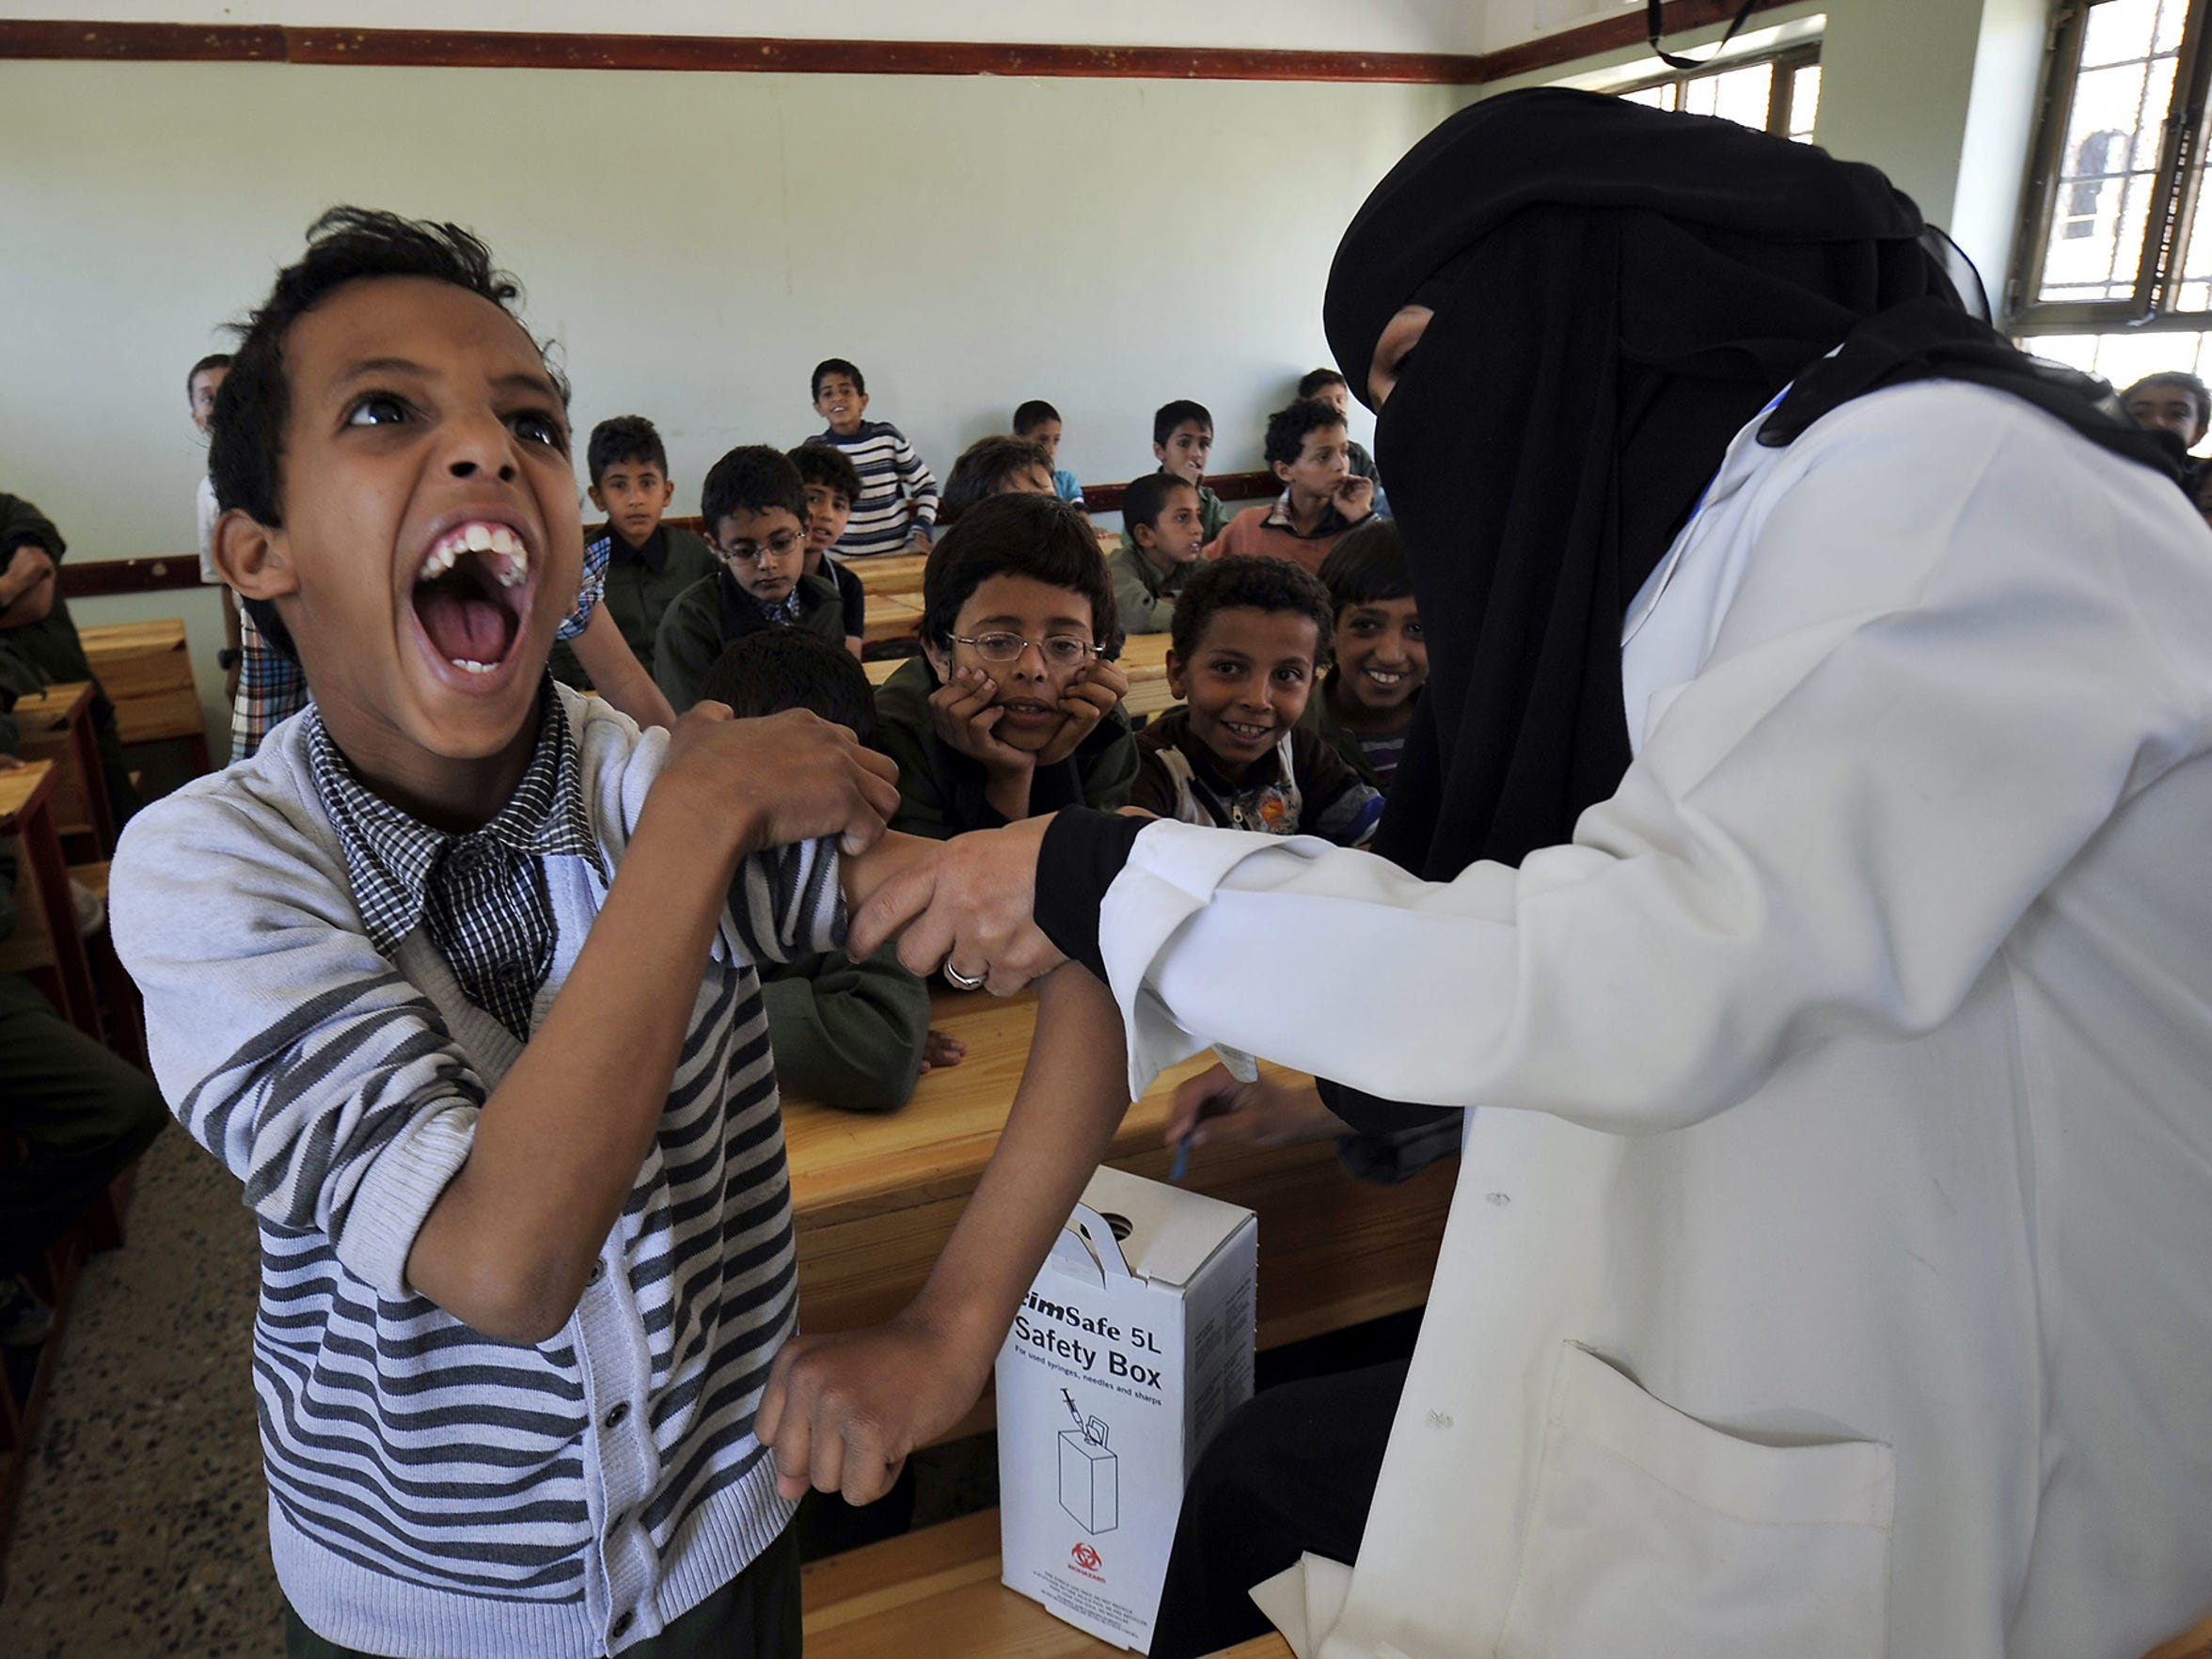 A student receives a measles vaccine on Nov. 11 in